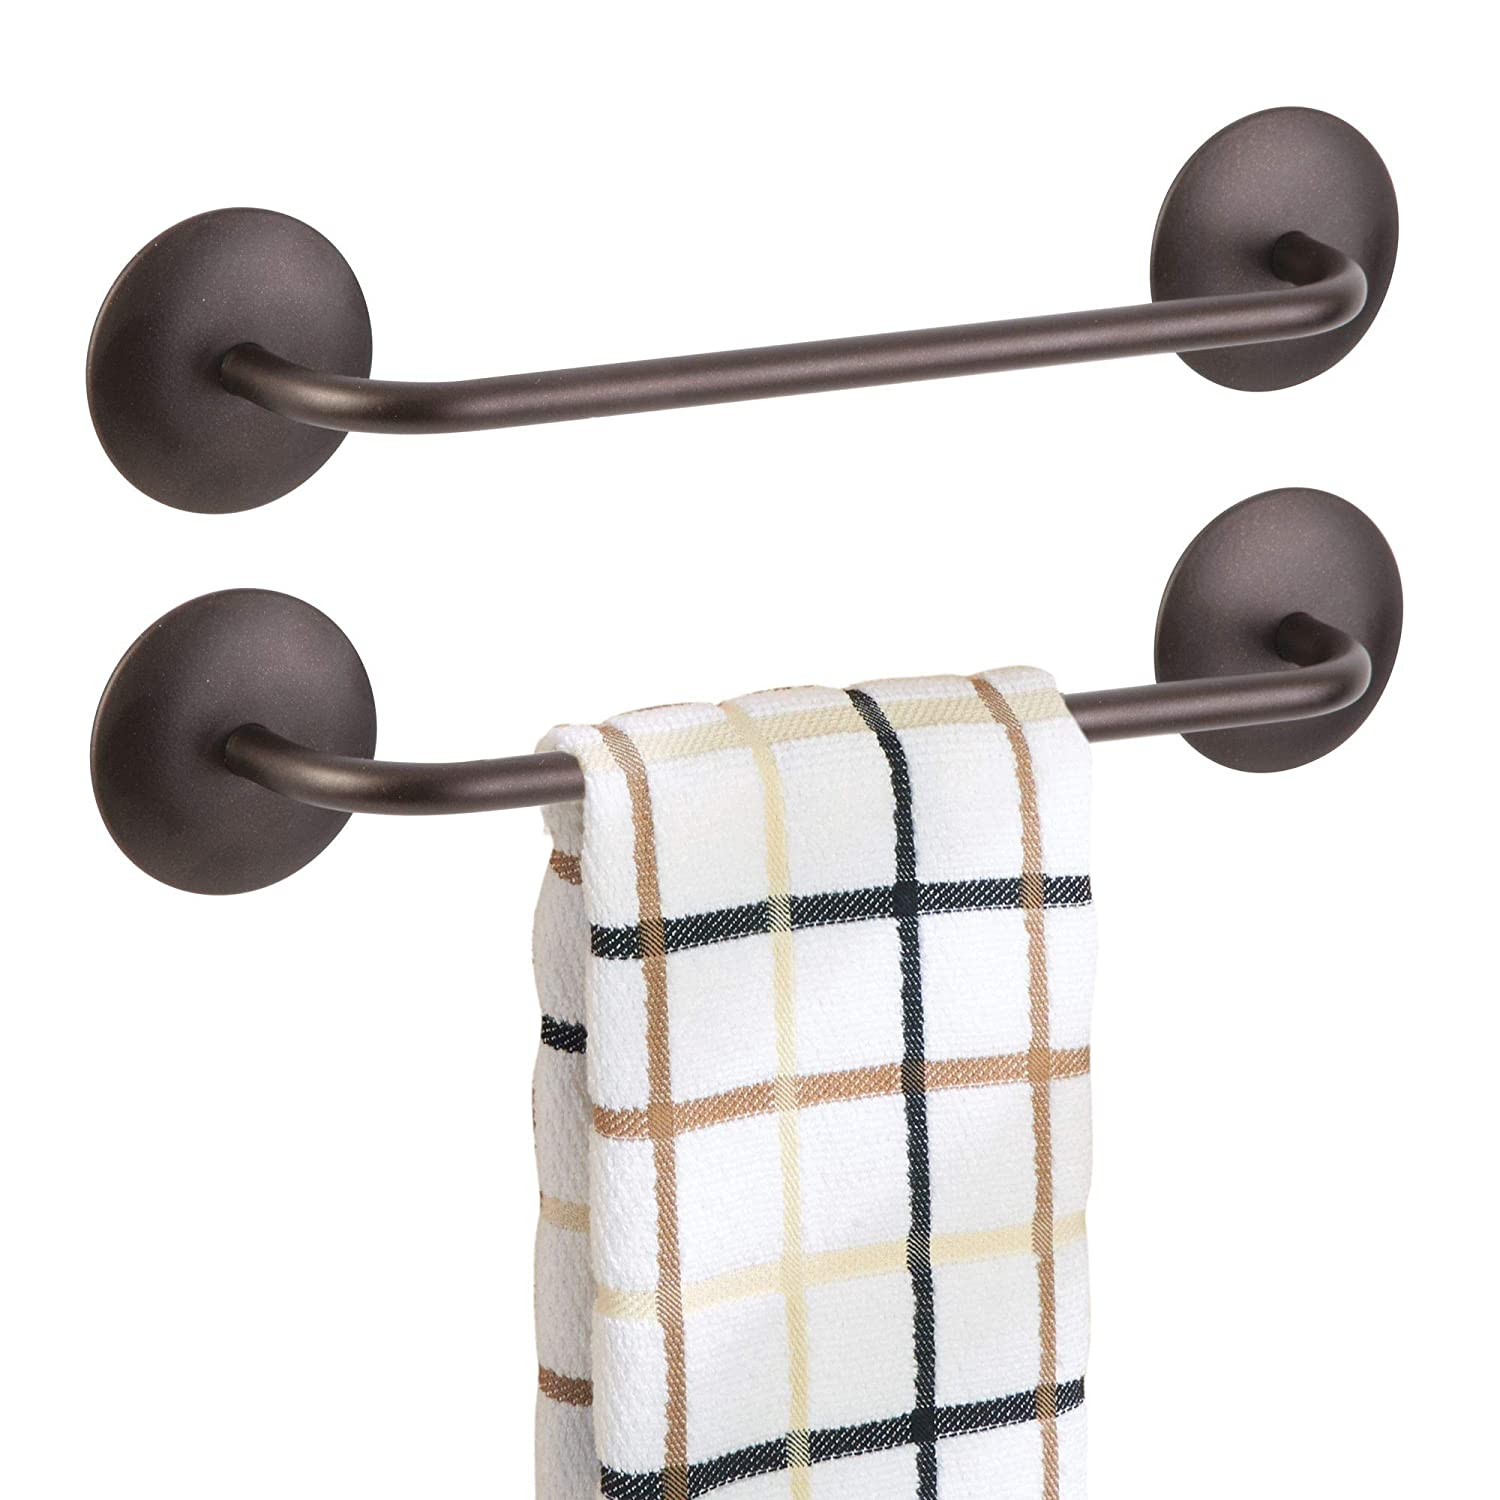 mDesign Kitchen Self-Adhesive Towel Bar Holder for Hand Towels, Dish Towels - Pack of 2, Bronze MetroDecor